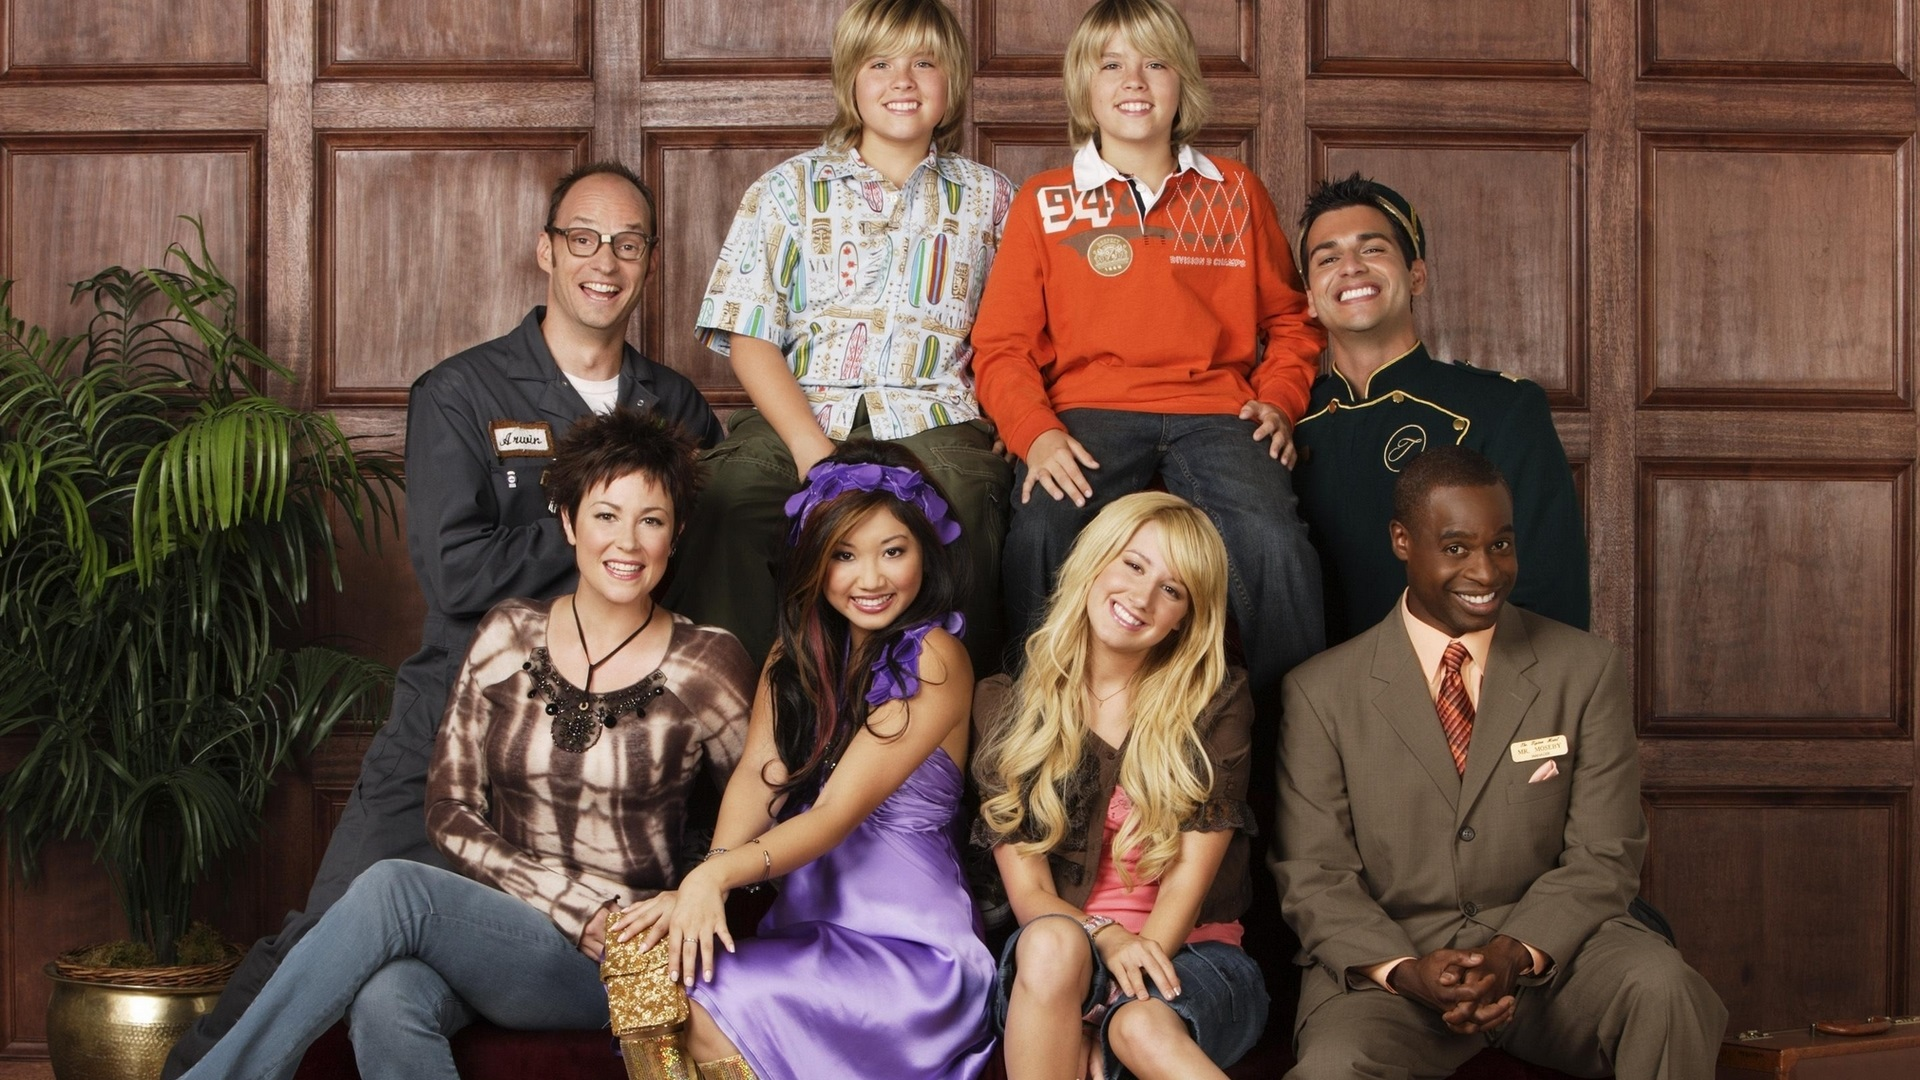 The suite life of zack and cody season 1 download torrent